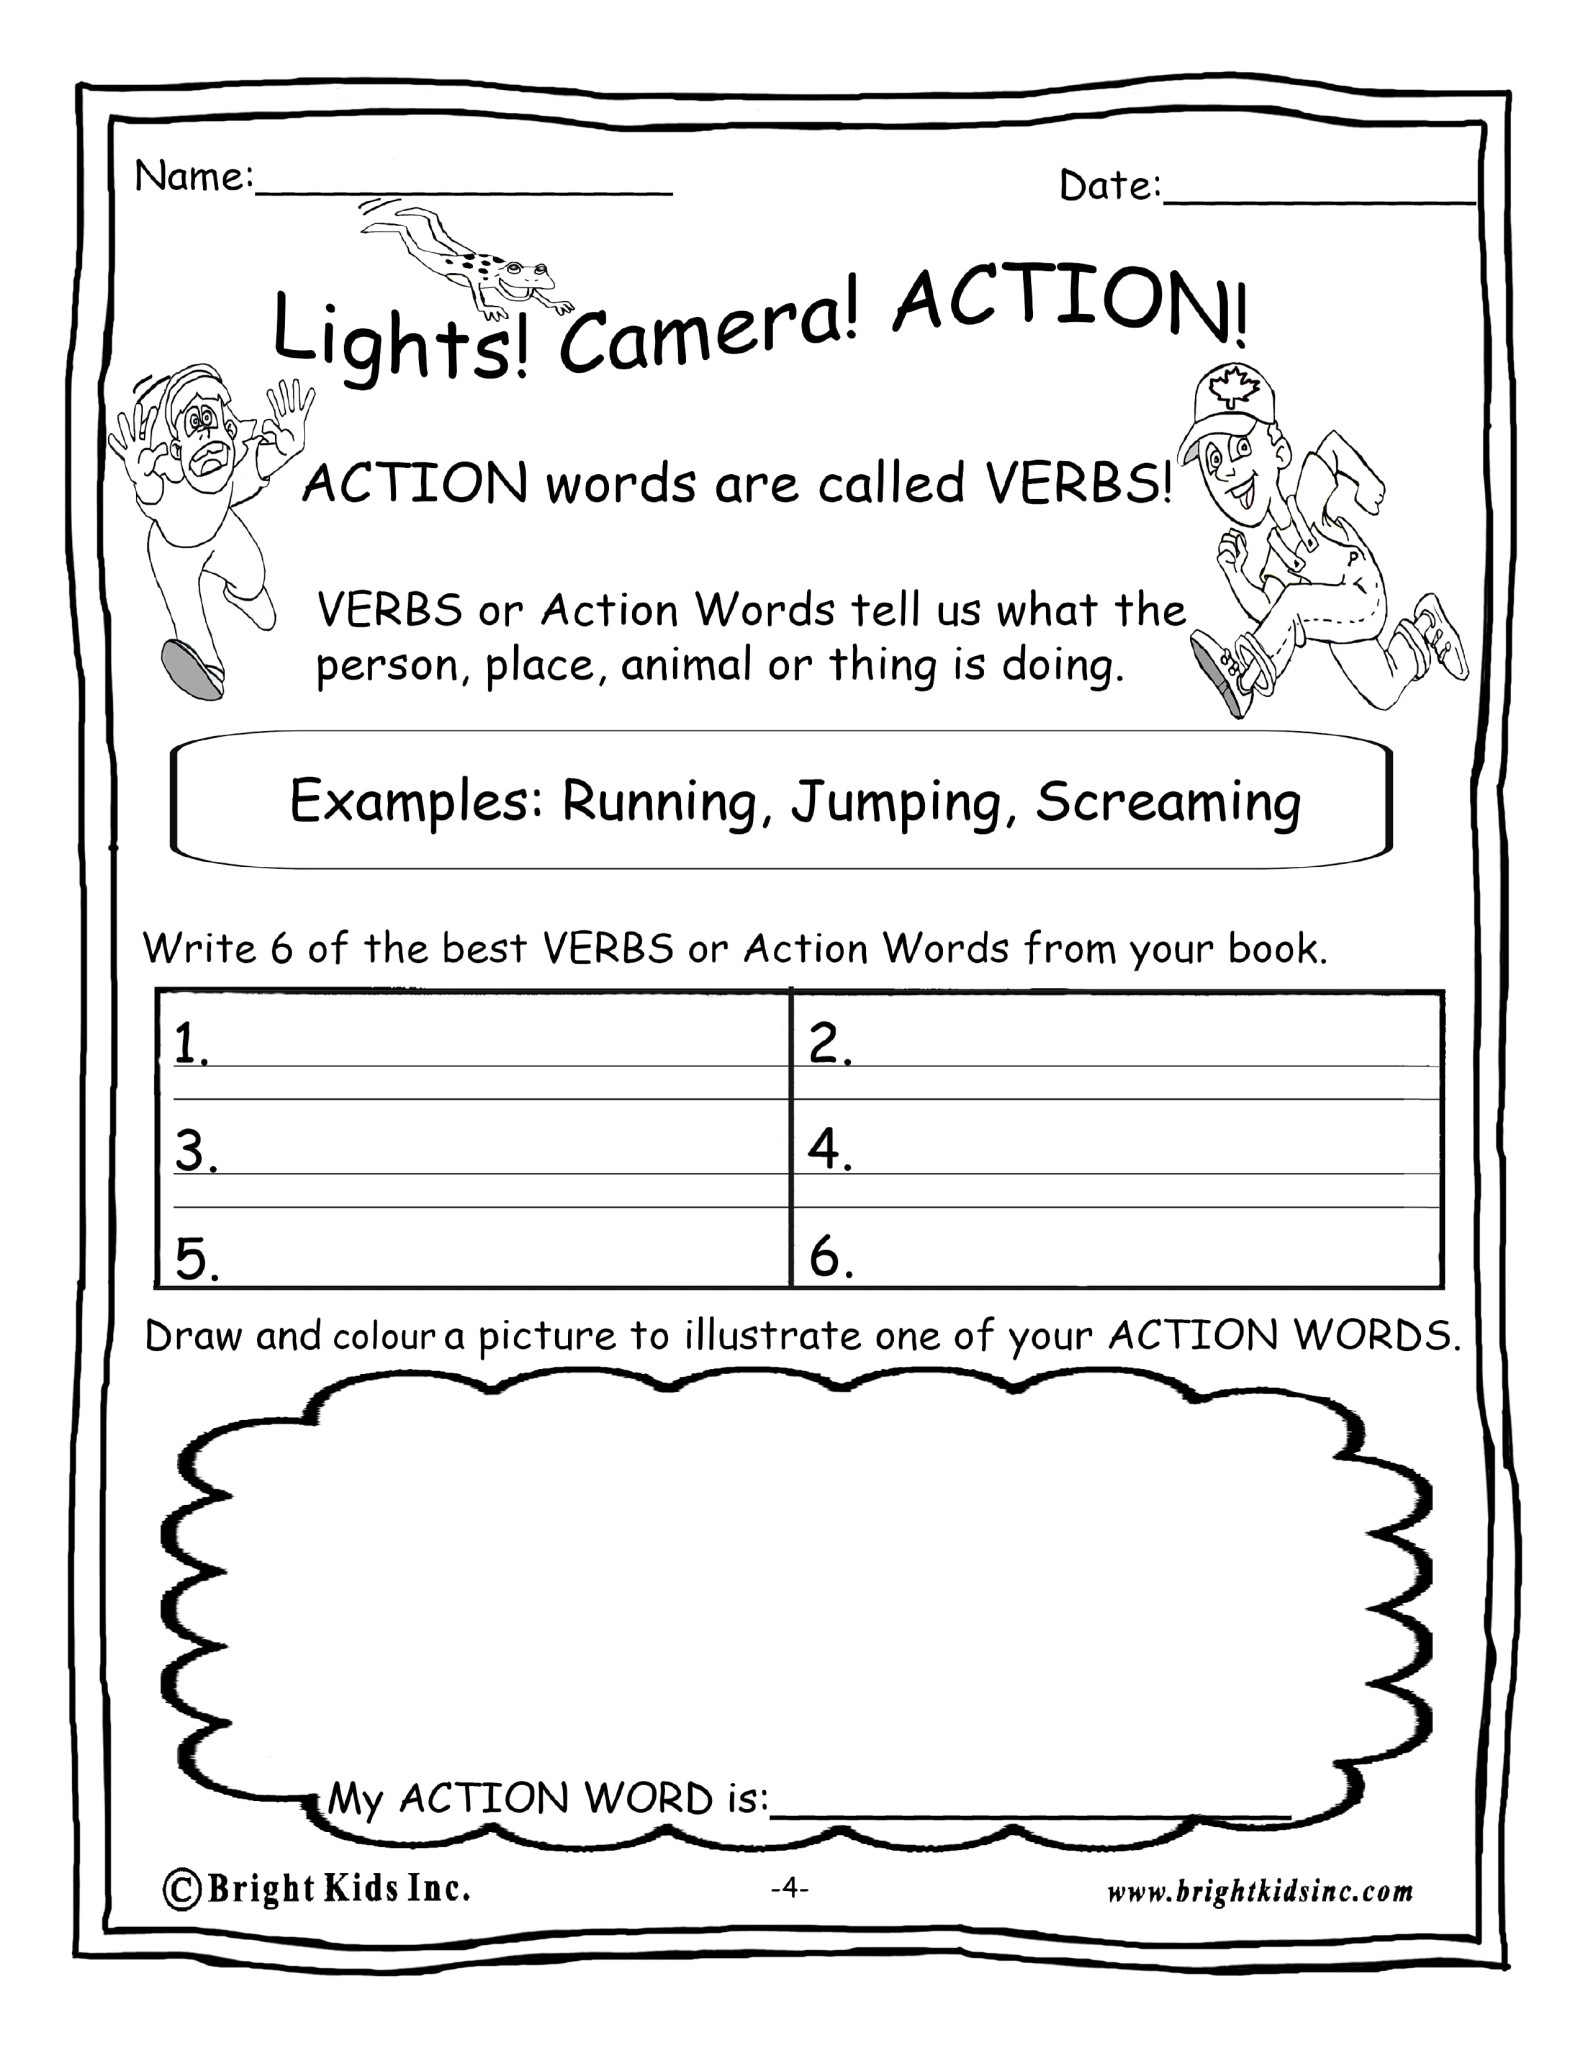 Books To Book Comparison Worksheet